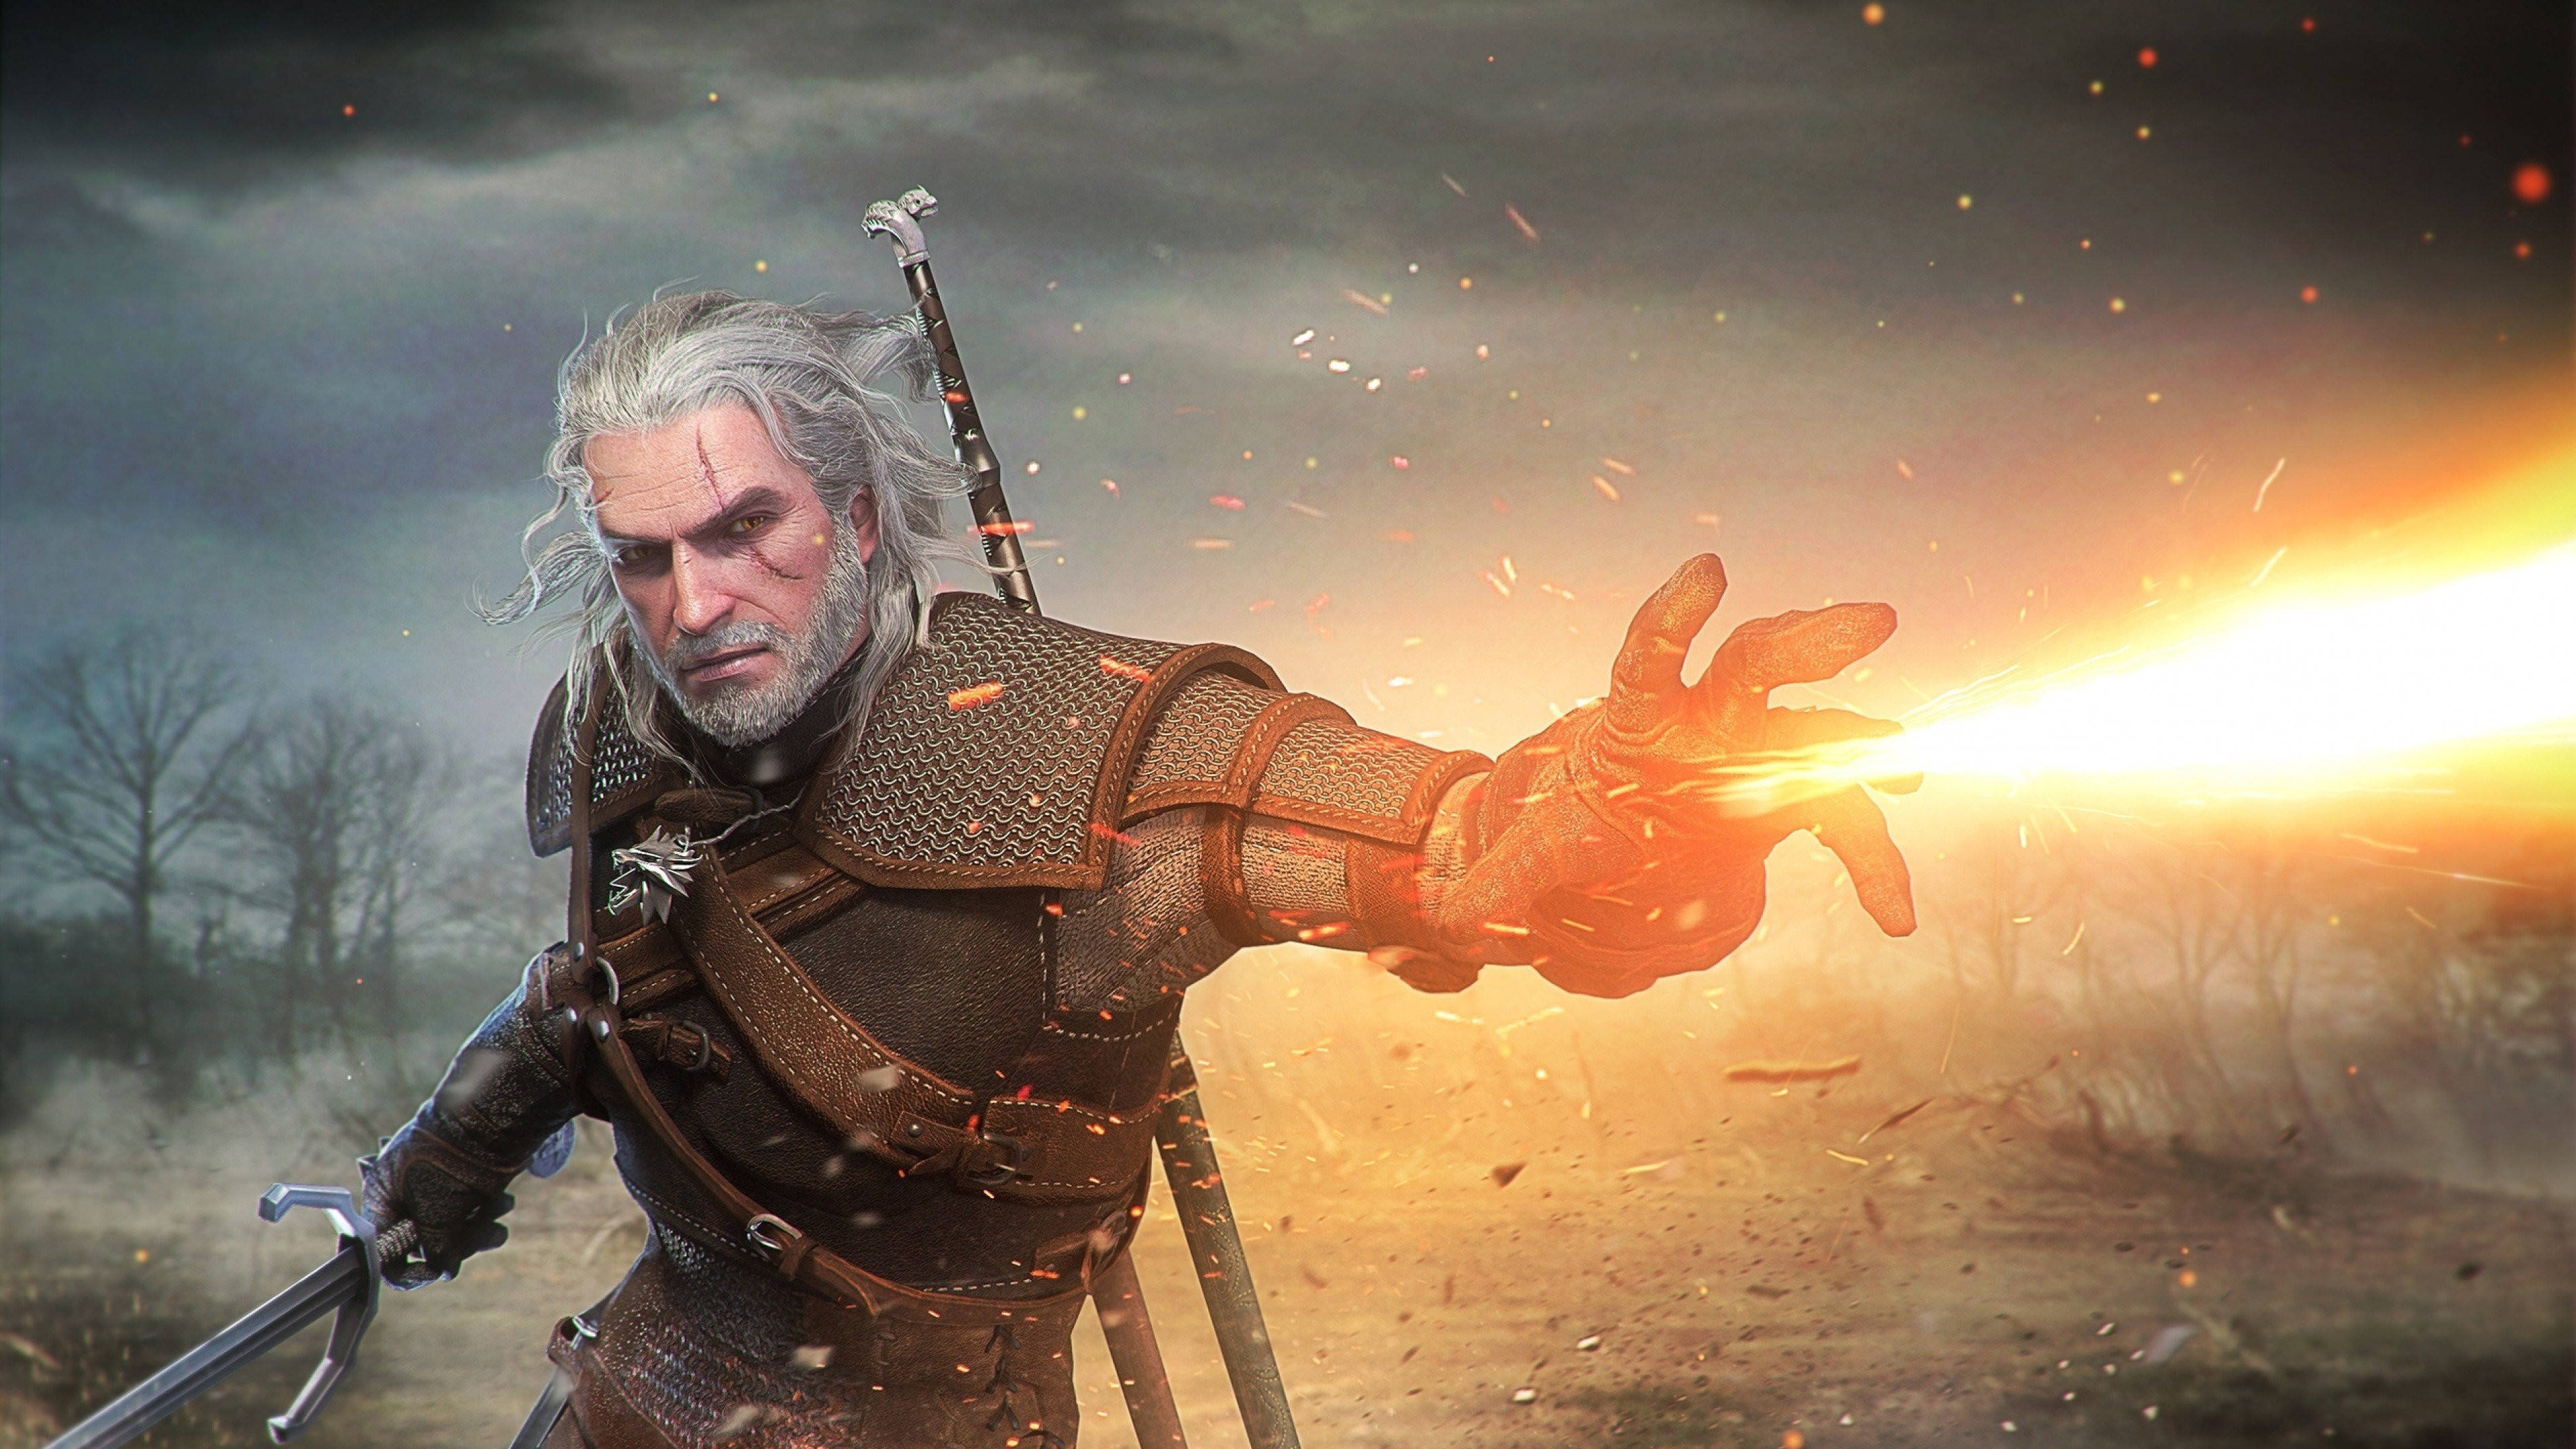 Wallpaper The Witcher 3 Wild Hunt 4k 5k Games 10954 Page 4